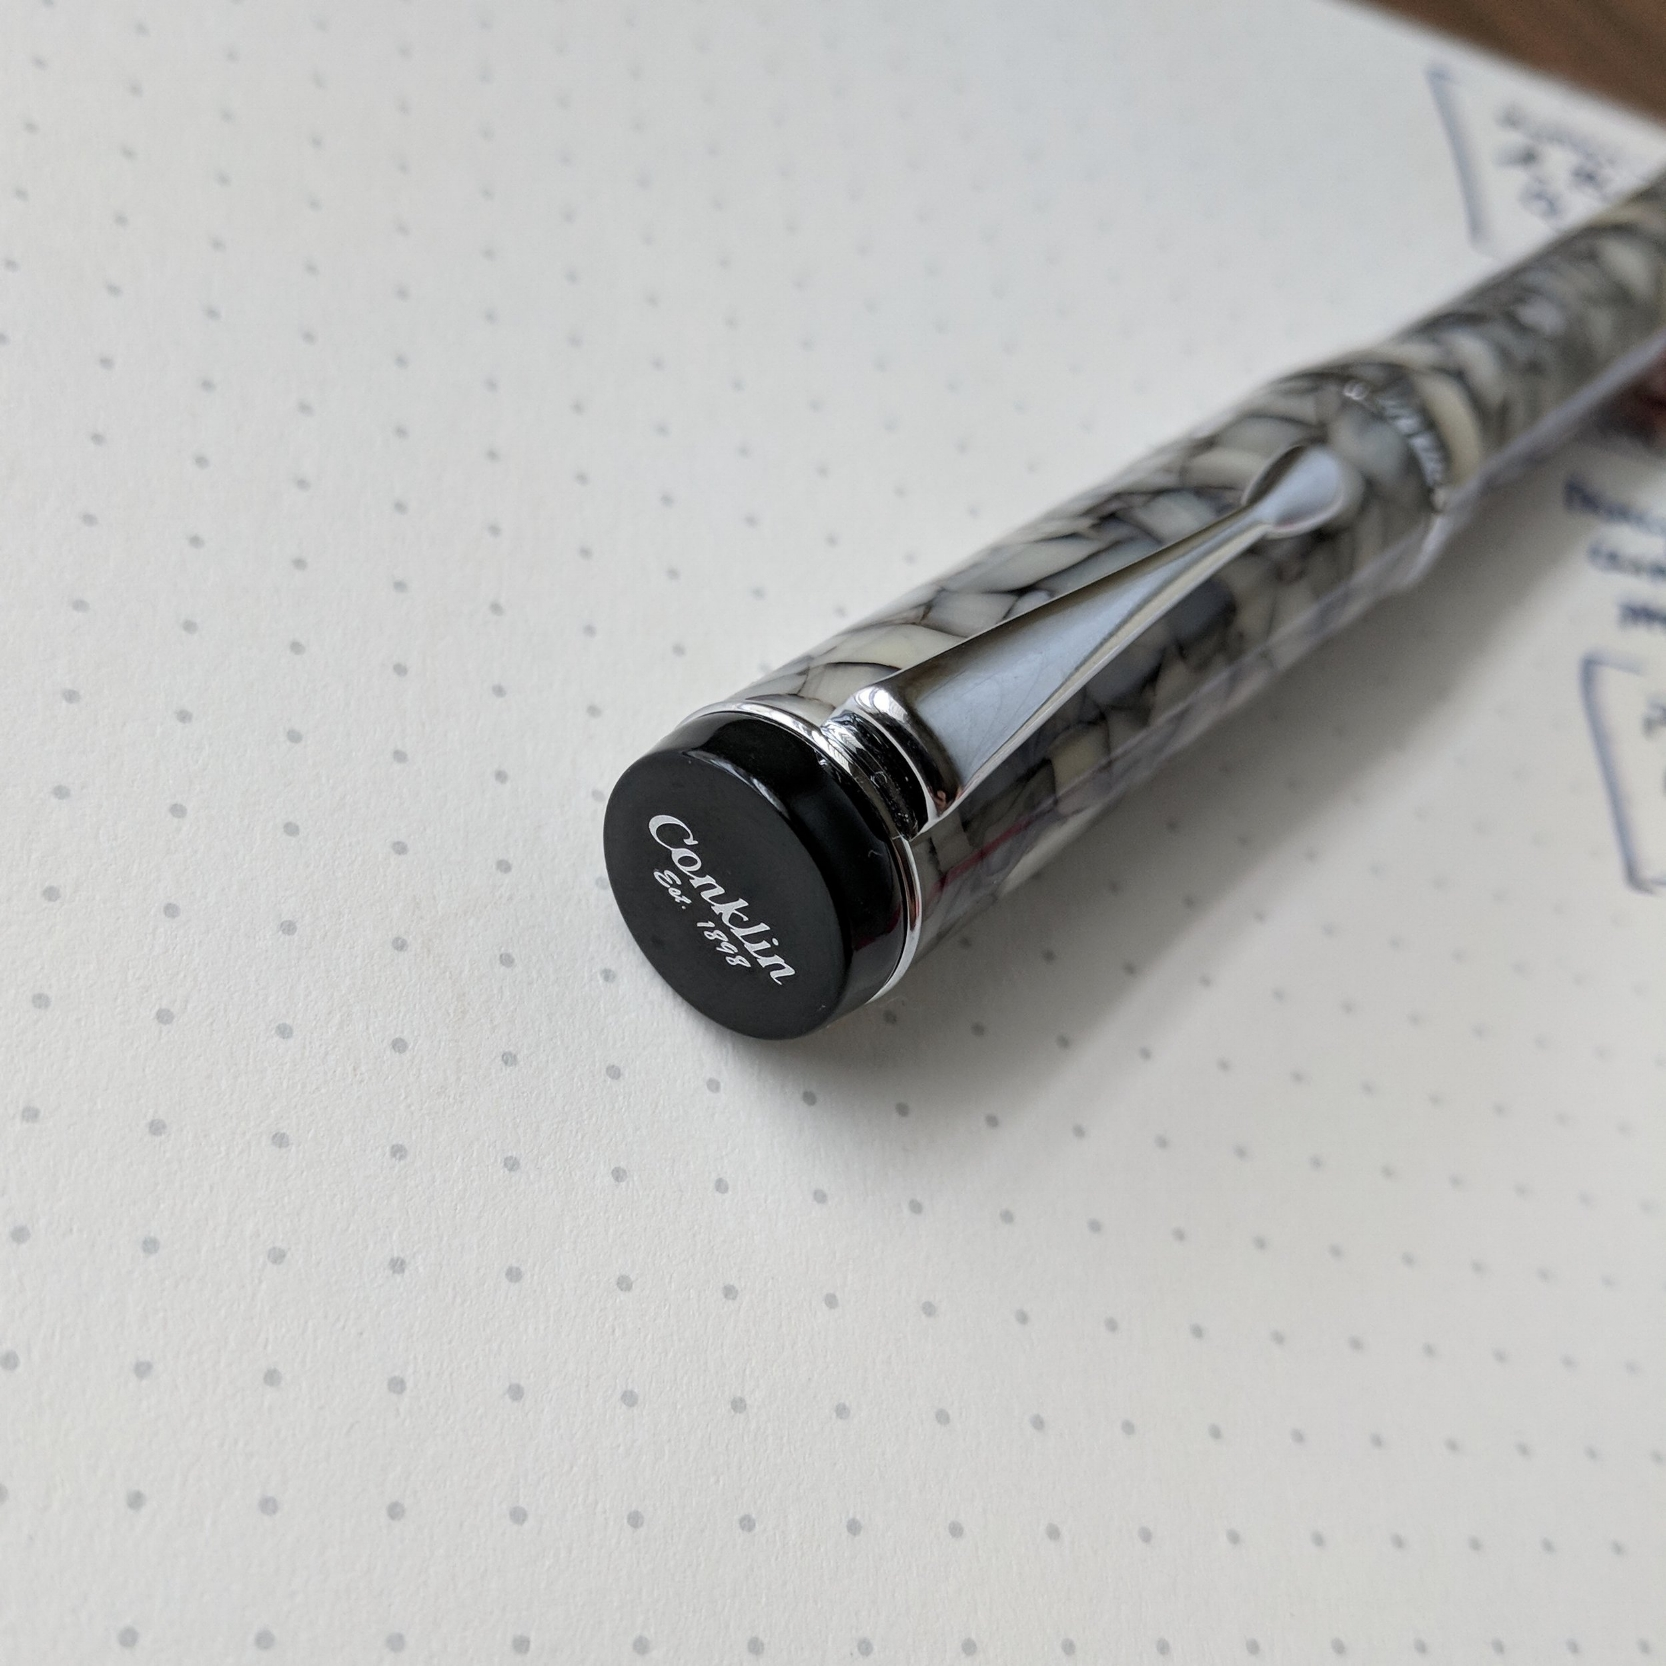 "Honestly, I probably could have gone without this engraved cap finial on the Duragraph, especially since the pen already has ""Conklin"" engraved on the cap band. But at the $50 price point, you can't always expect absolute elegance."